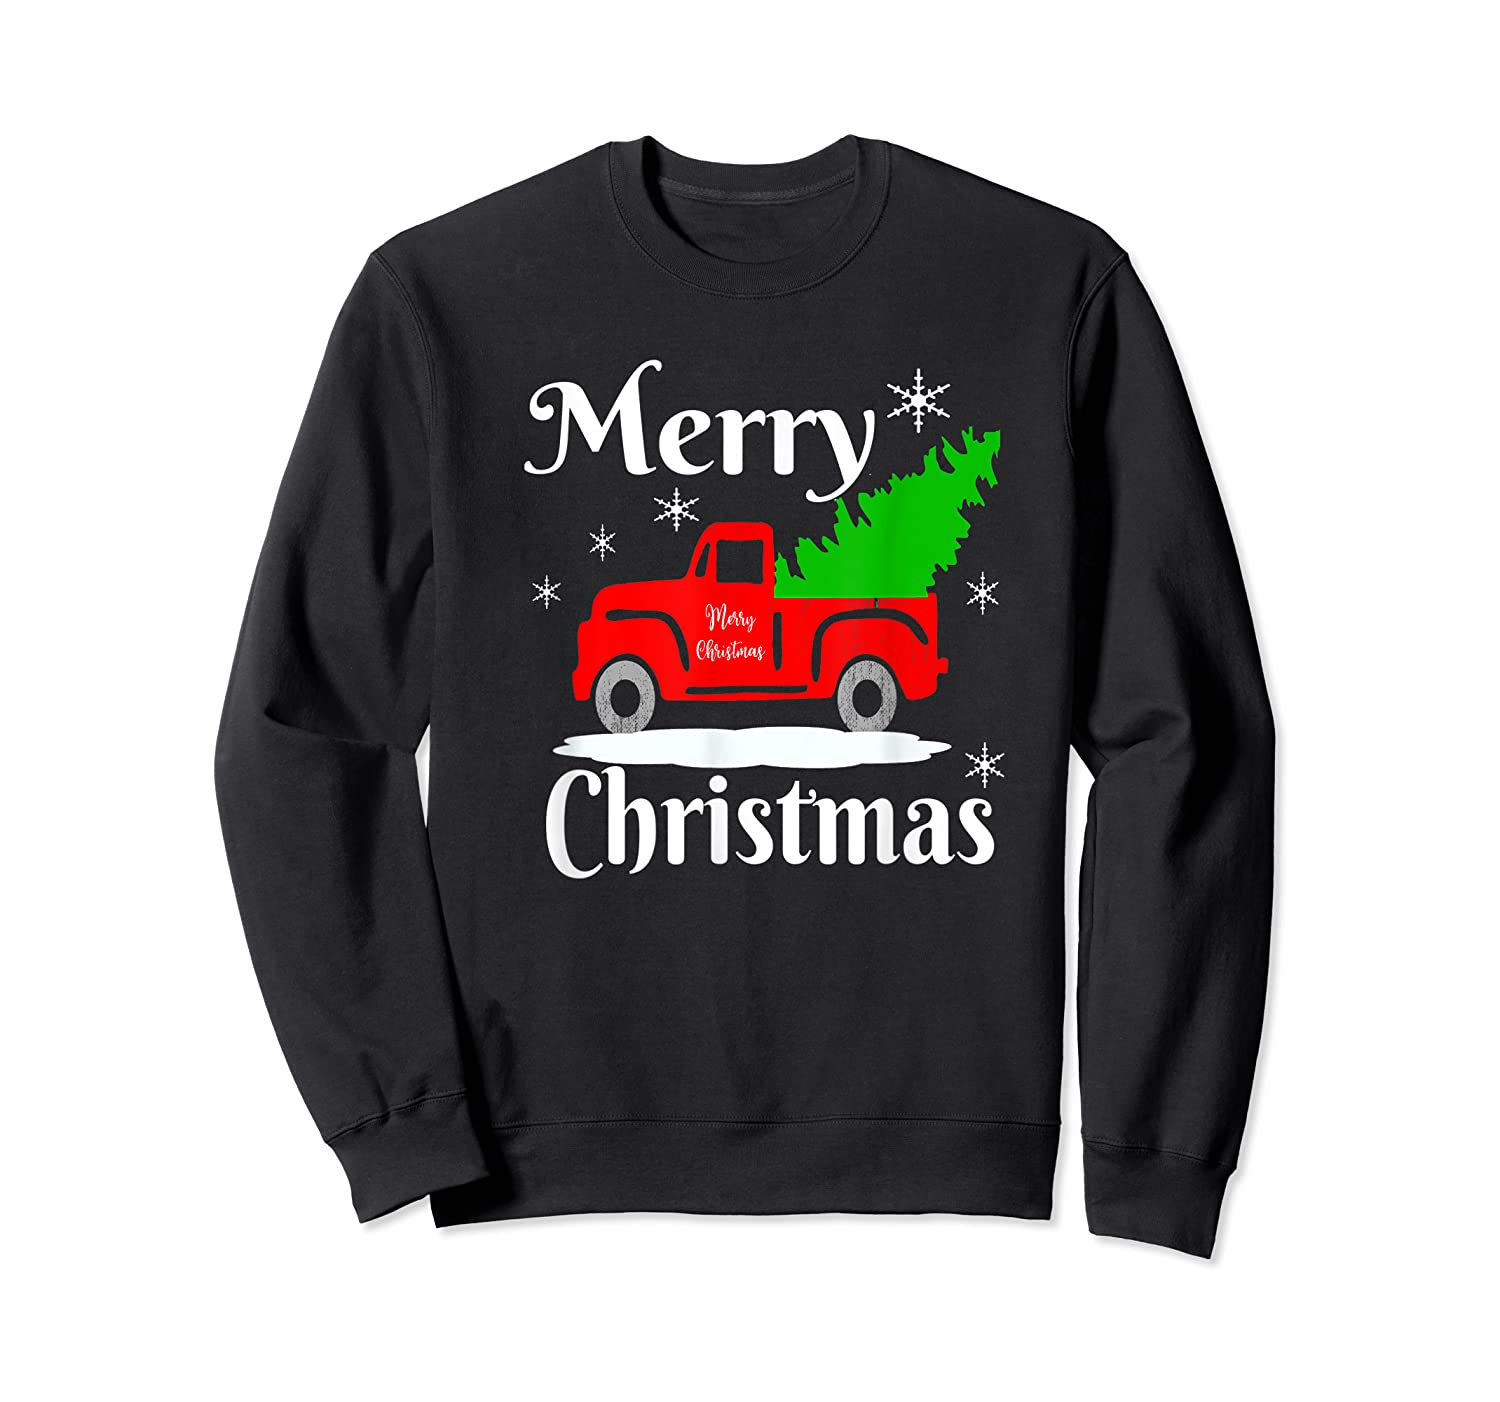 Merry Christmas Old Vintage Red Truck With Christmas Tree Shirts Crewneck Sweater